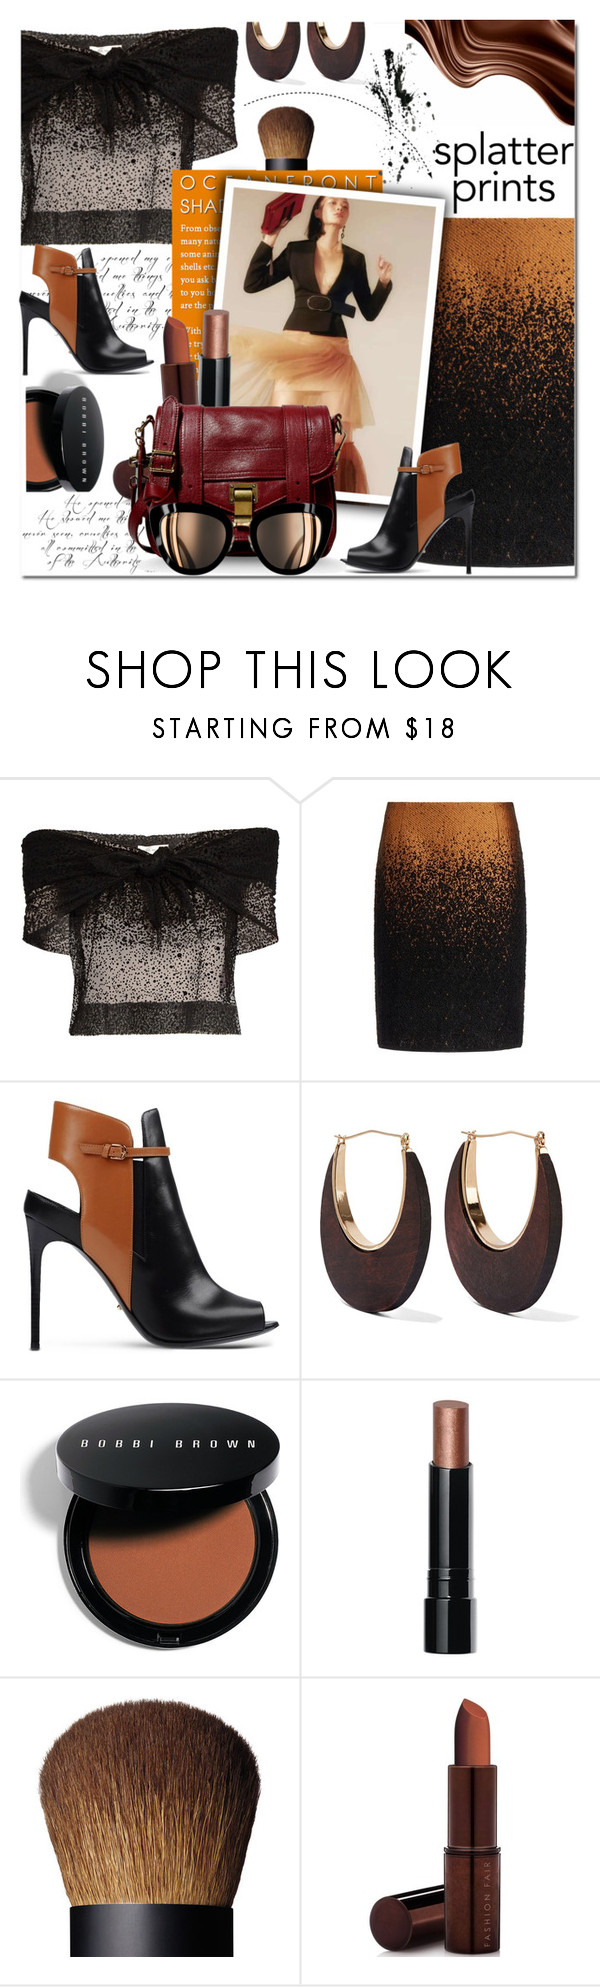 """SPLATTER PRINTS"" by sweta-gupta ❤ liked on Polyvore featuring Isa Arfen, Pringle of Scotland, Sergio Rossi, Kenneth Jay Lane, Bobbi Brown Cosmetics, Fashion Fair, Proenza Schouler, Chanel, polyvoreeditorial and paintiton"